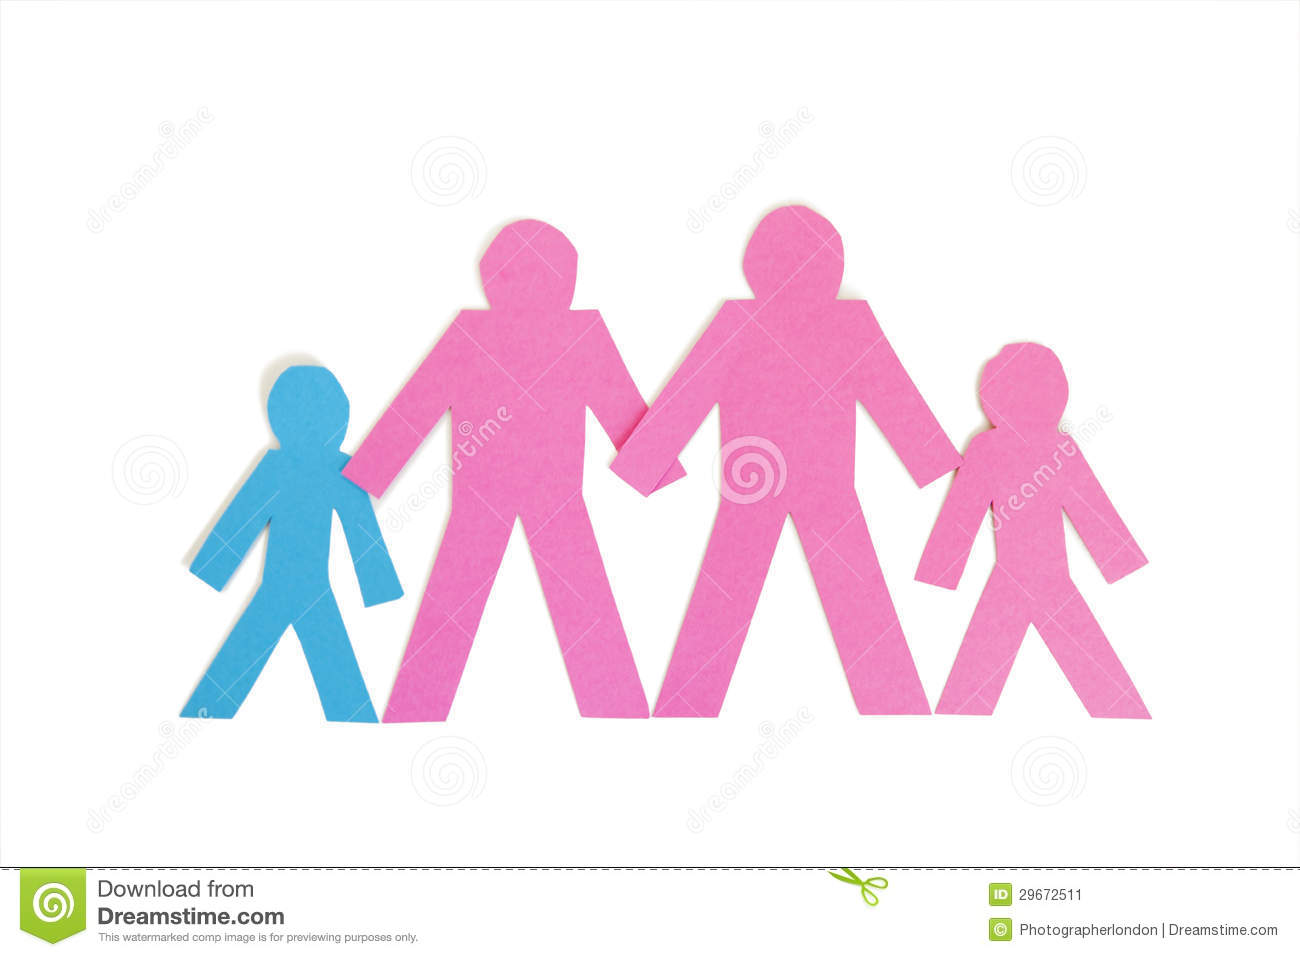 essay on lesbian daughter Effects of absent fathers on daughters relationship development such as having an abusive father or lesbian couples 2012 father and daughter in this essay i.